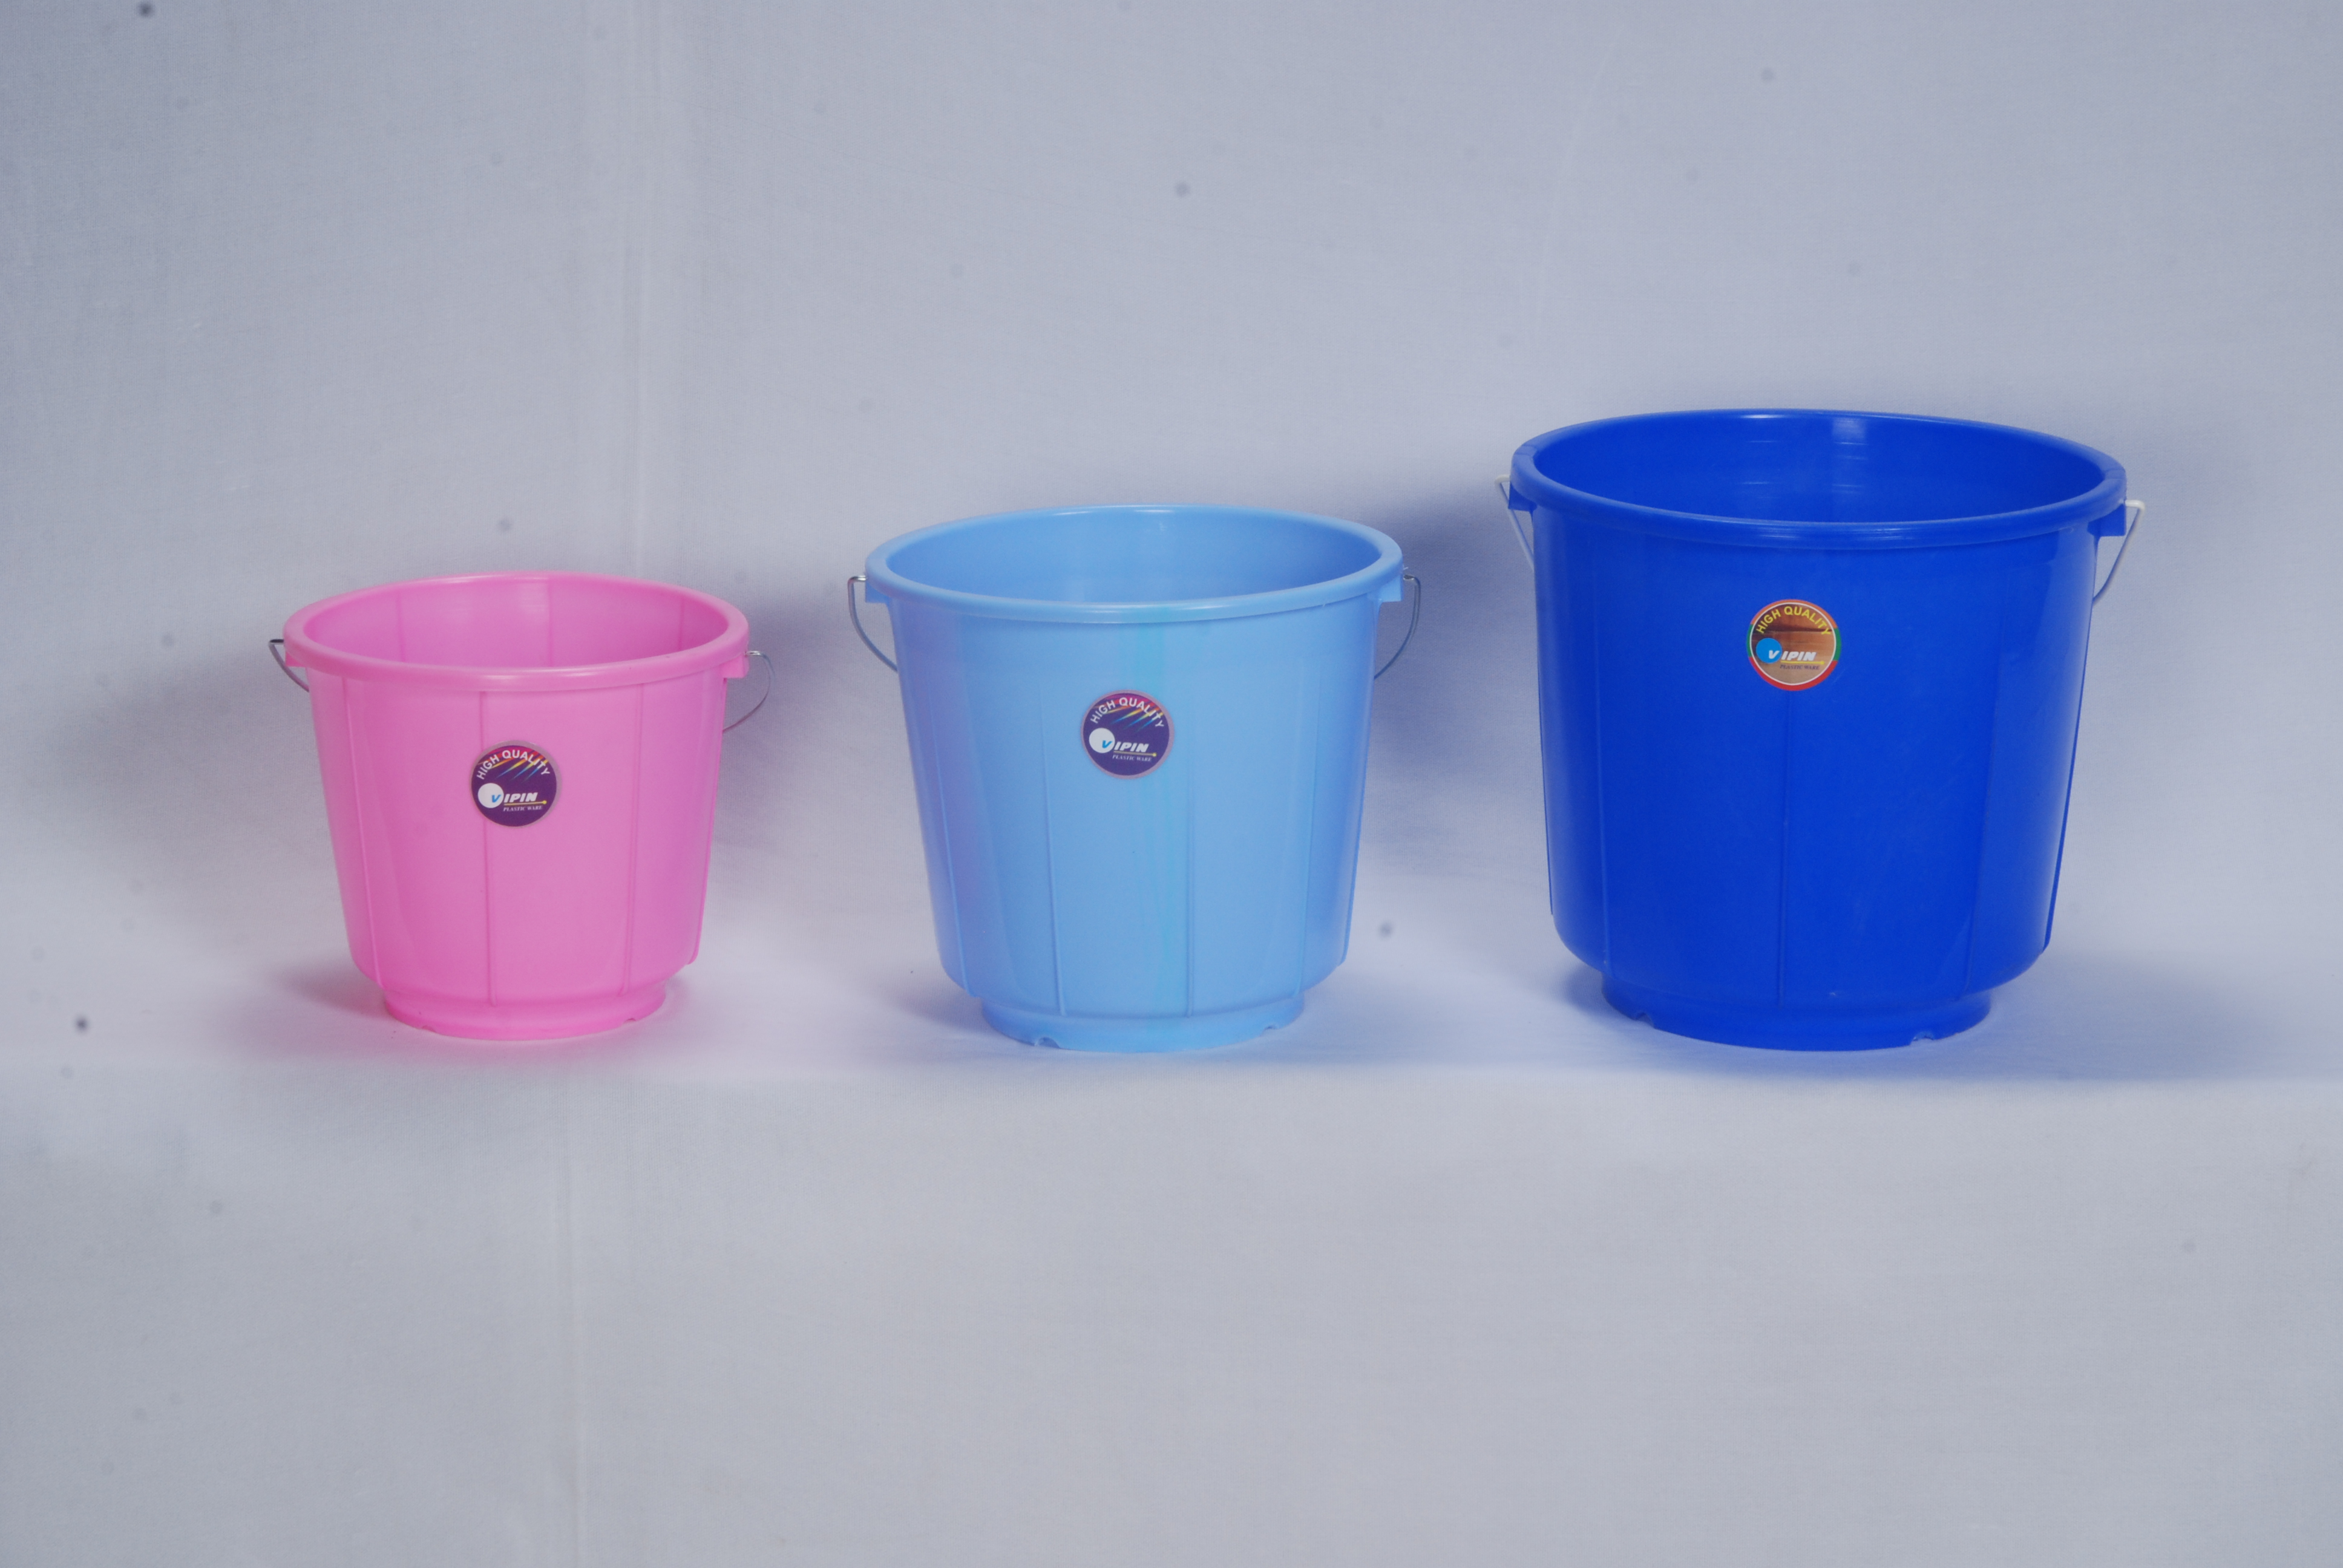 Buckets 3, 5, and 9 Litres